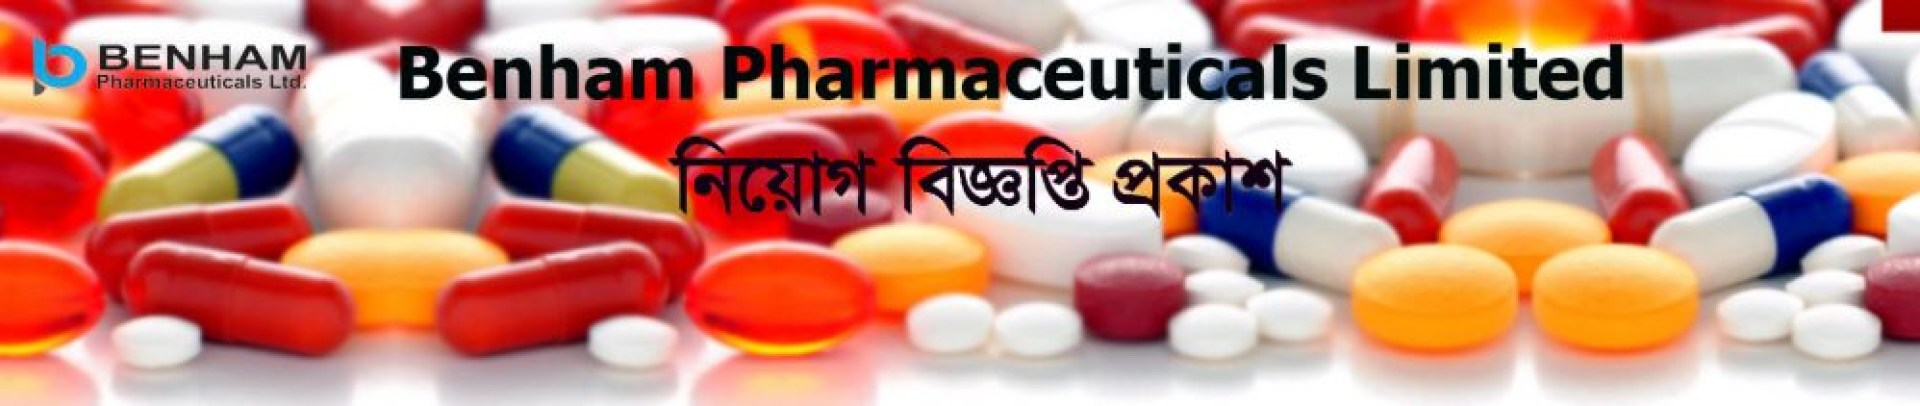 Benham-Pharmaceuticals-Limited